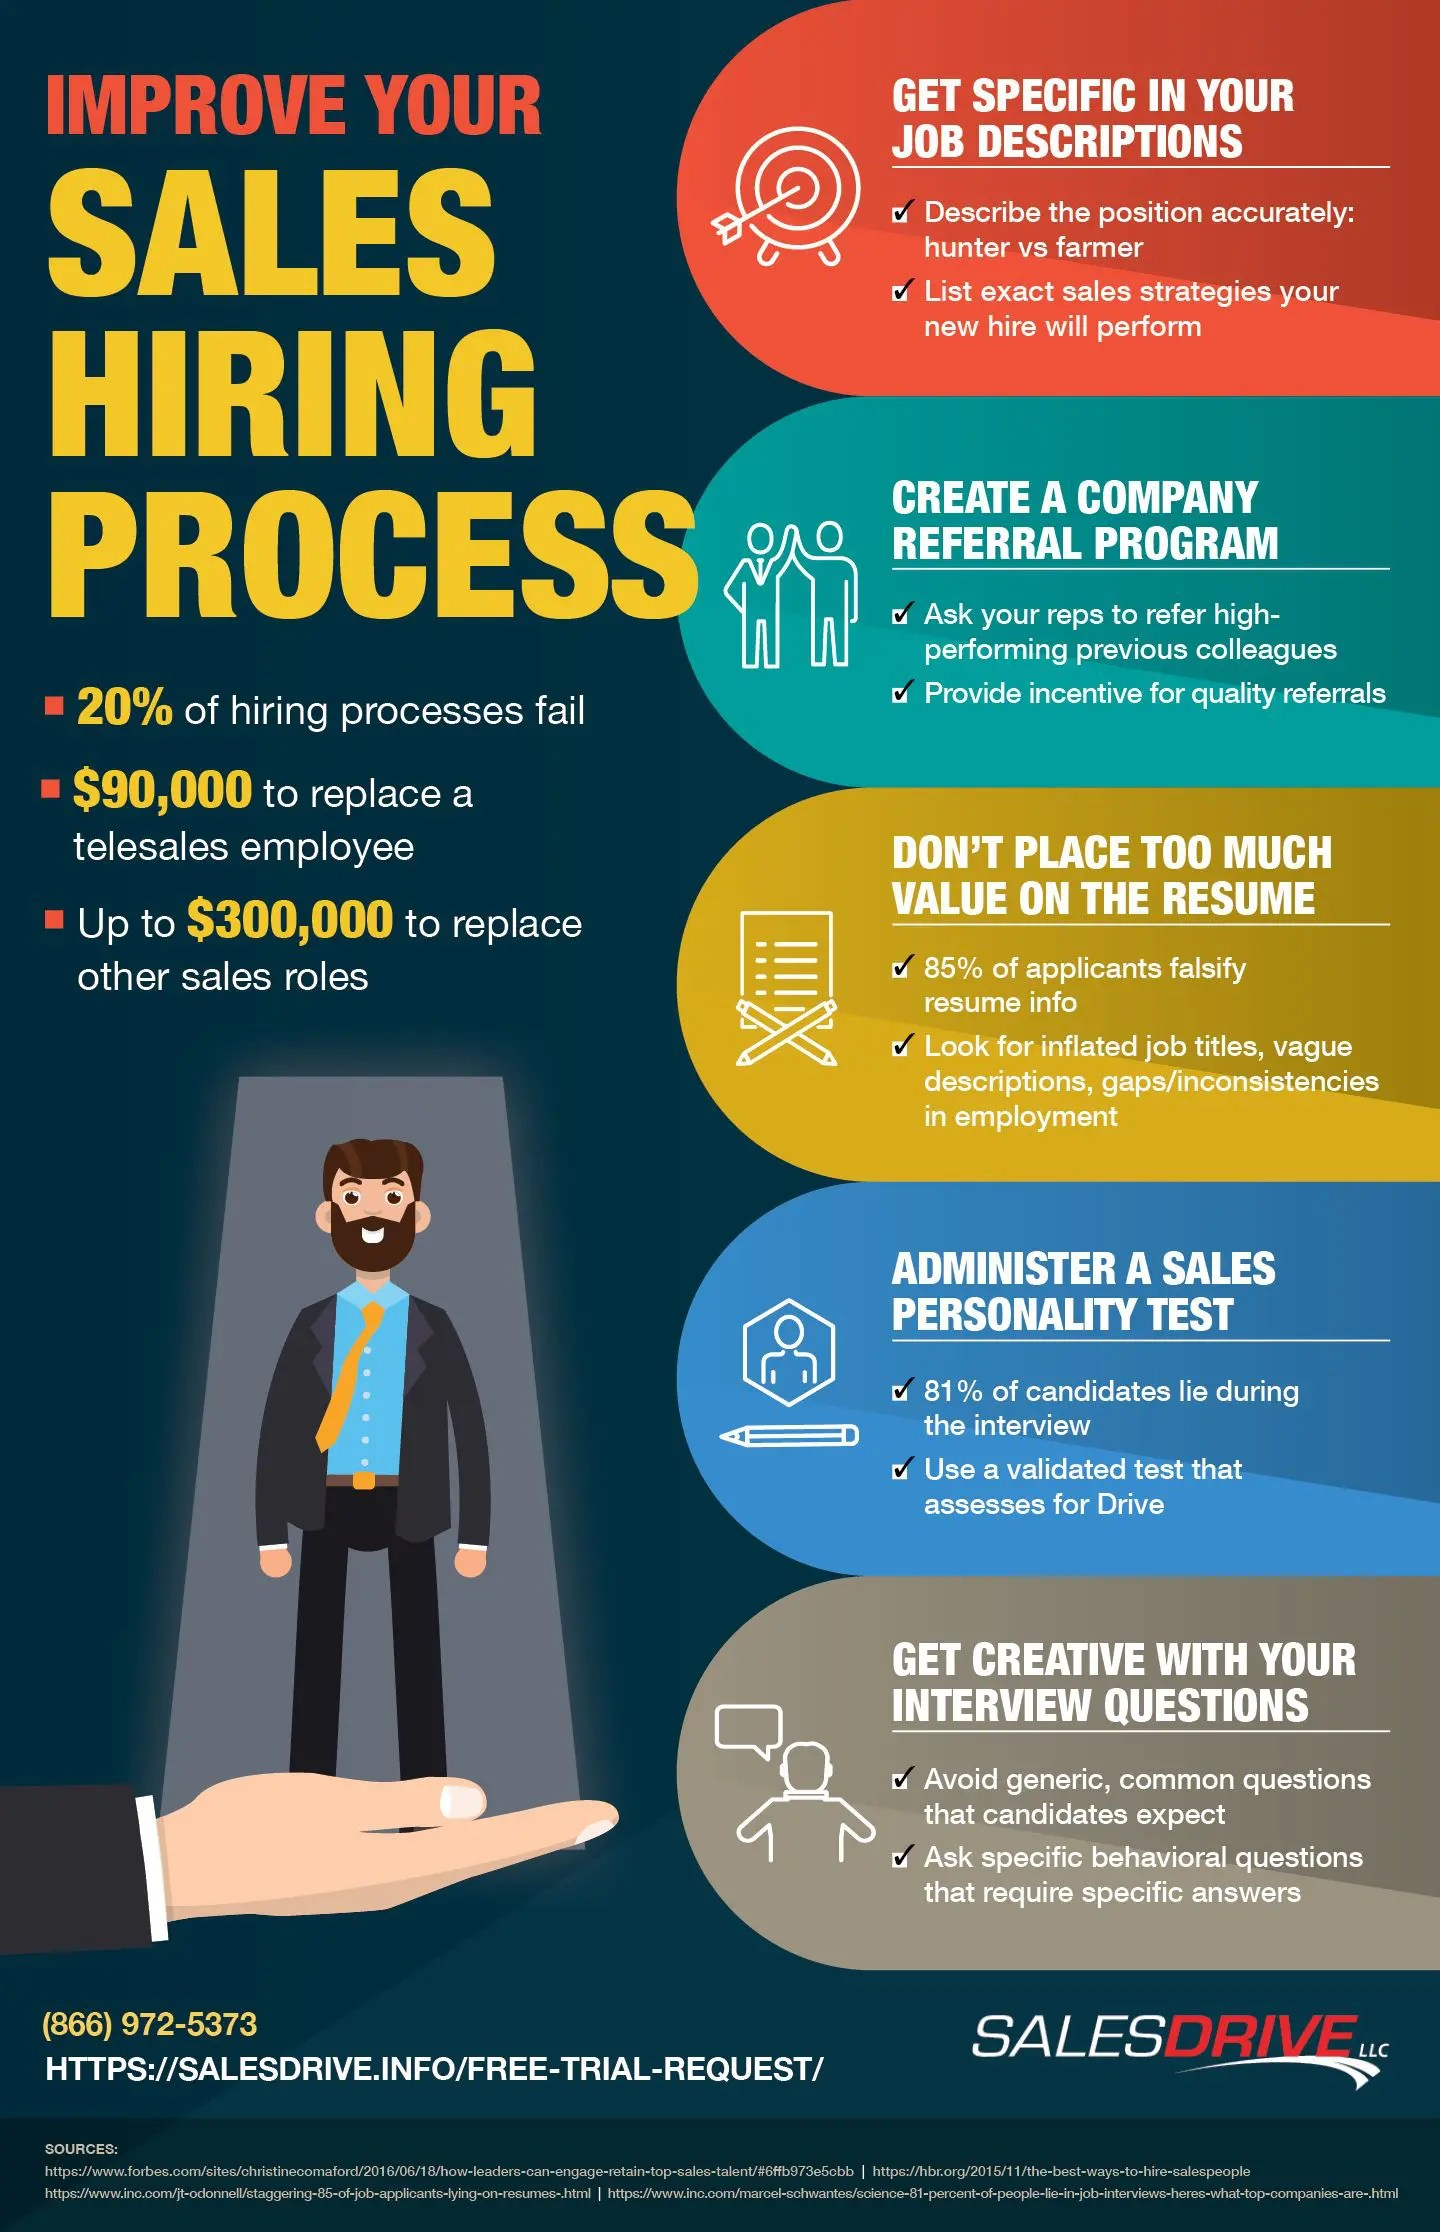 How to Dramatically Improve Your Sales Hiring Process